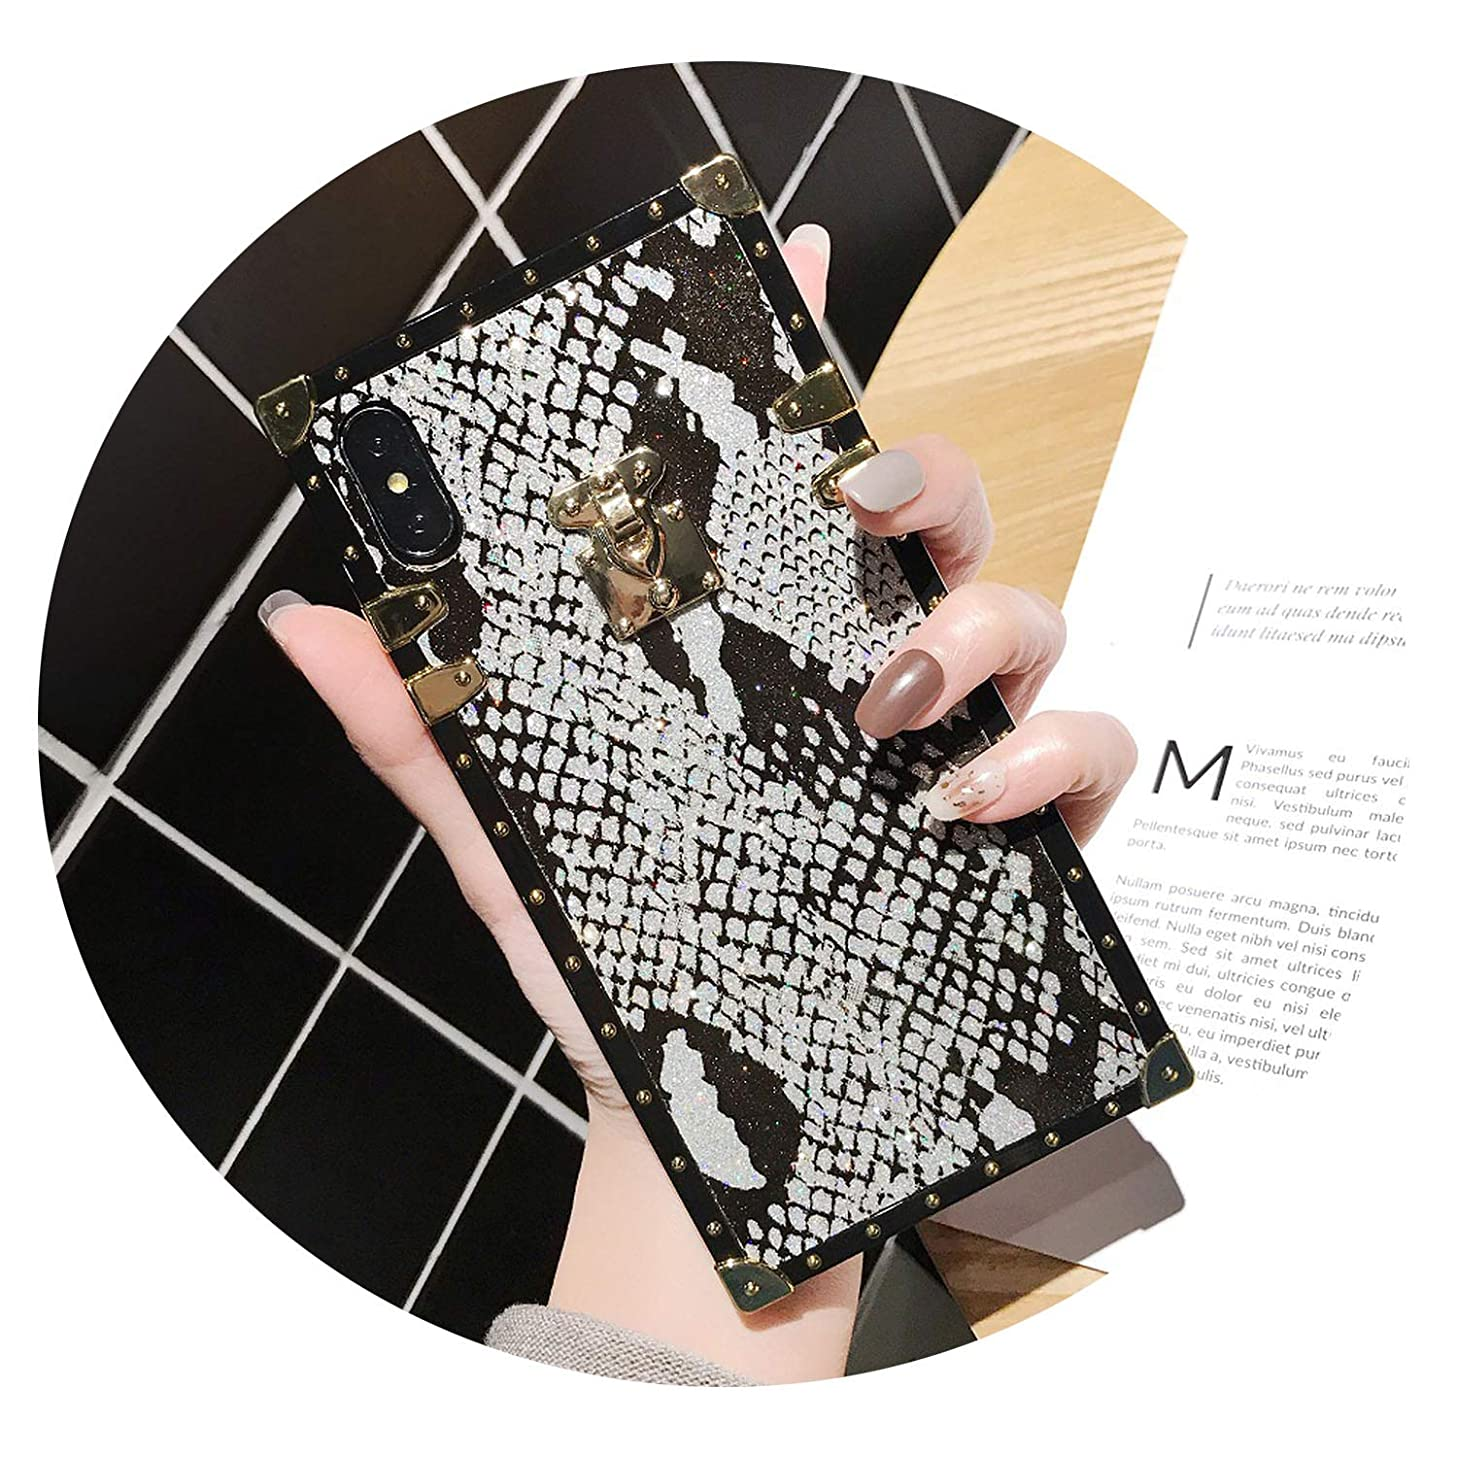 Vintage Snake Skin Case for iPhone 7 8 6 6S Plus Luxury Brand Square Phone Cover for iPhone 8Plus X XR XS Max,Silver,for iPhone Xs Max